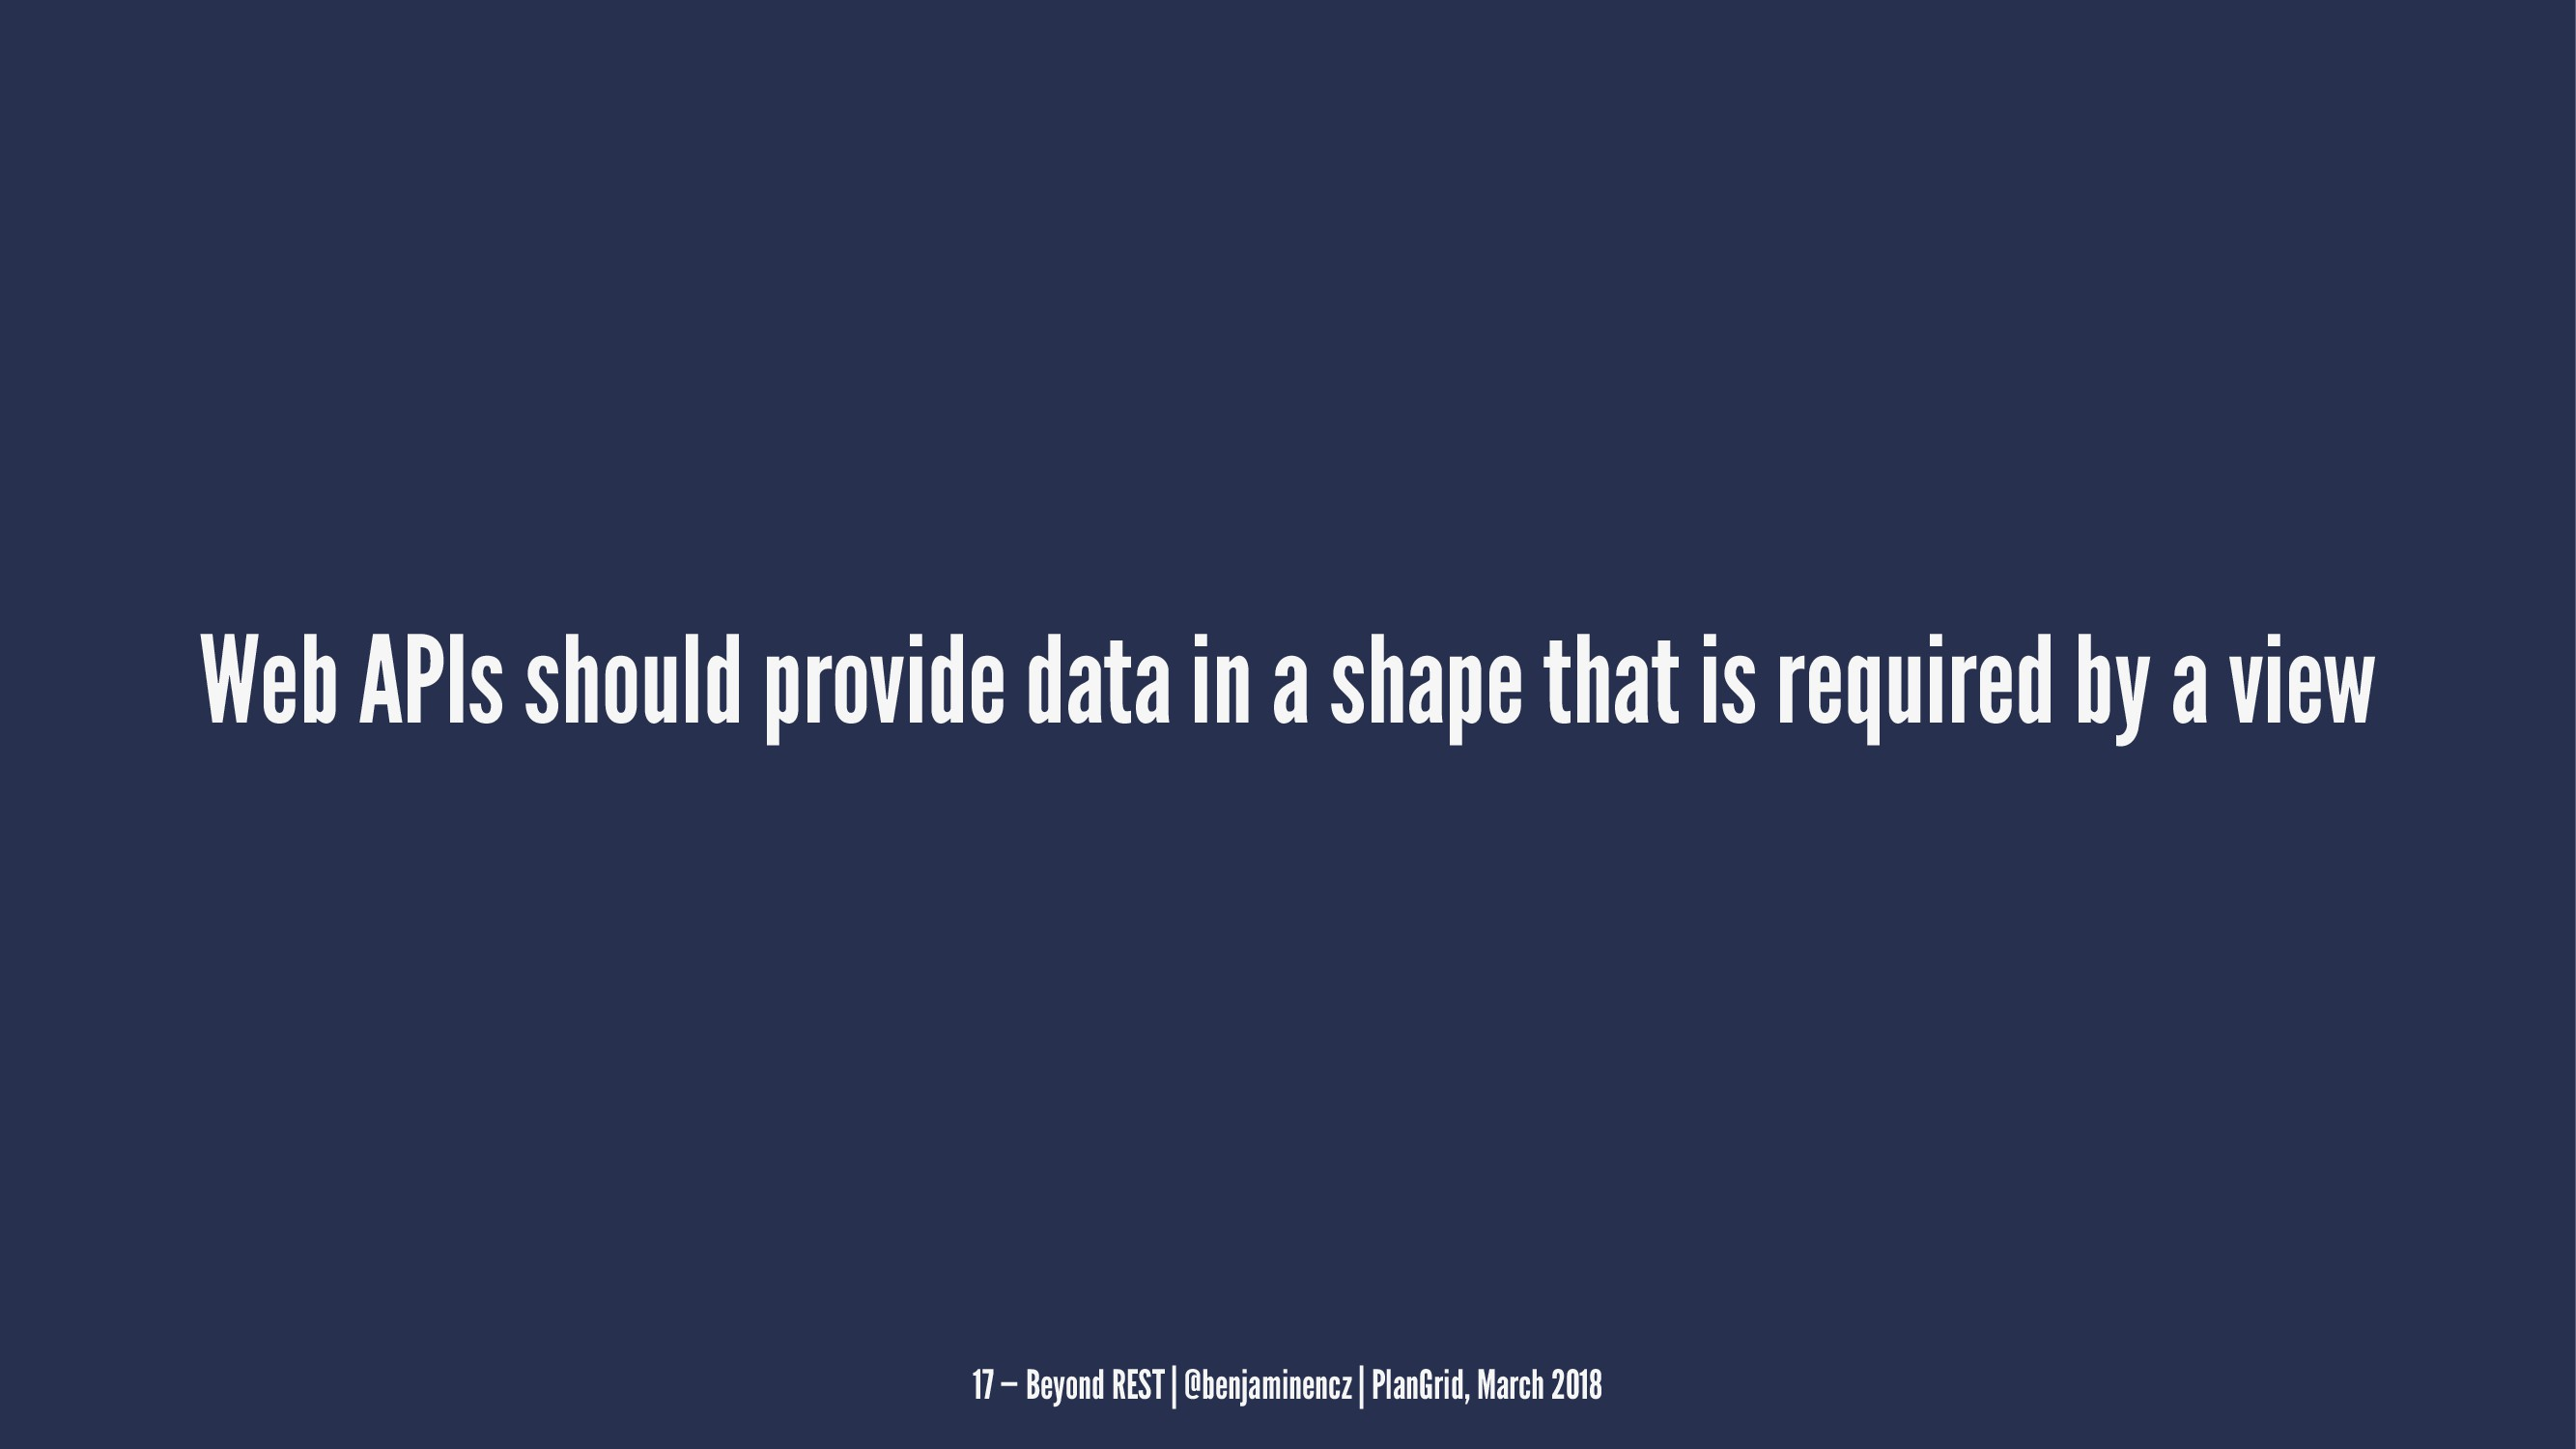 Web APIs should provide data in a shape that is...